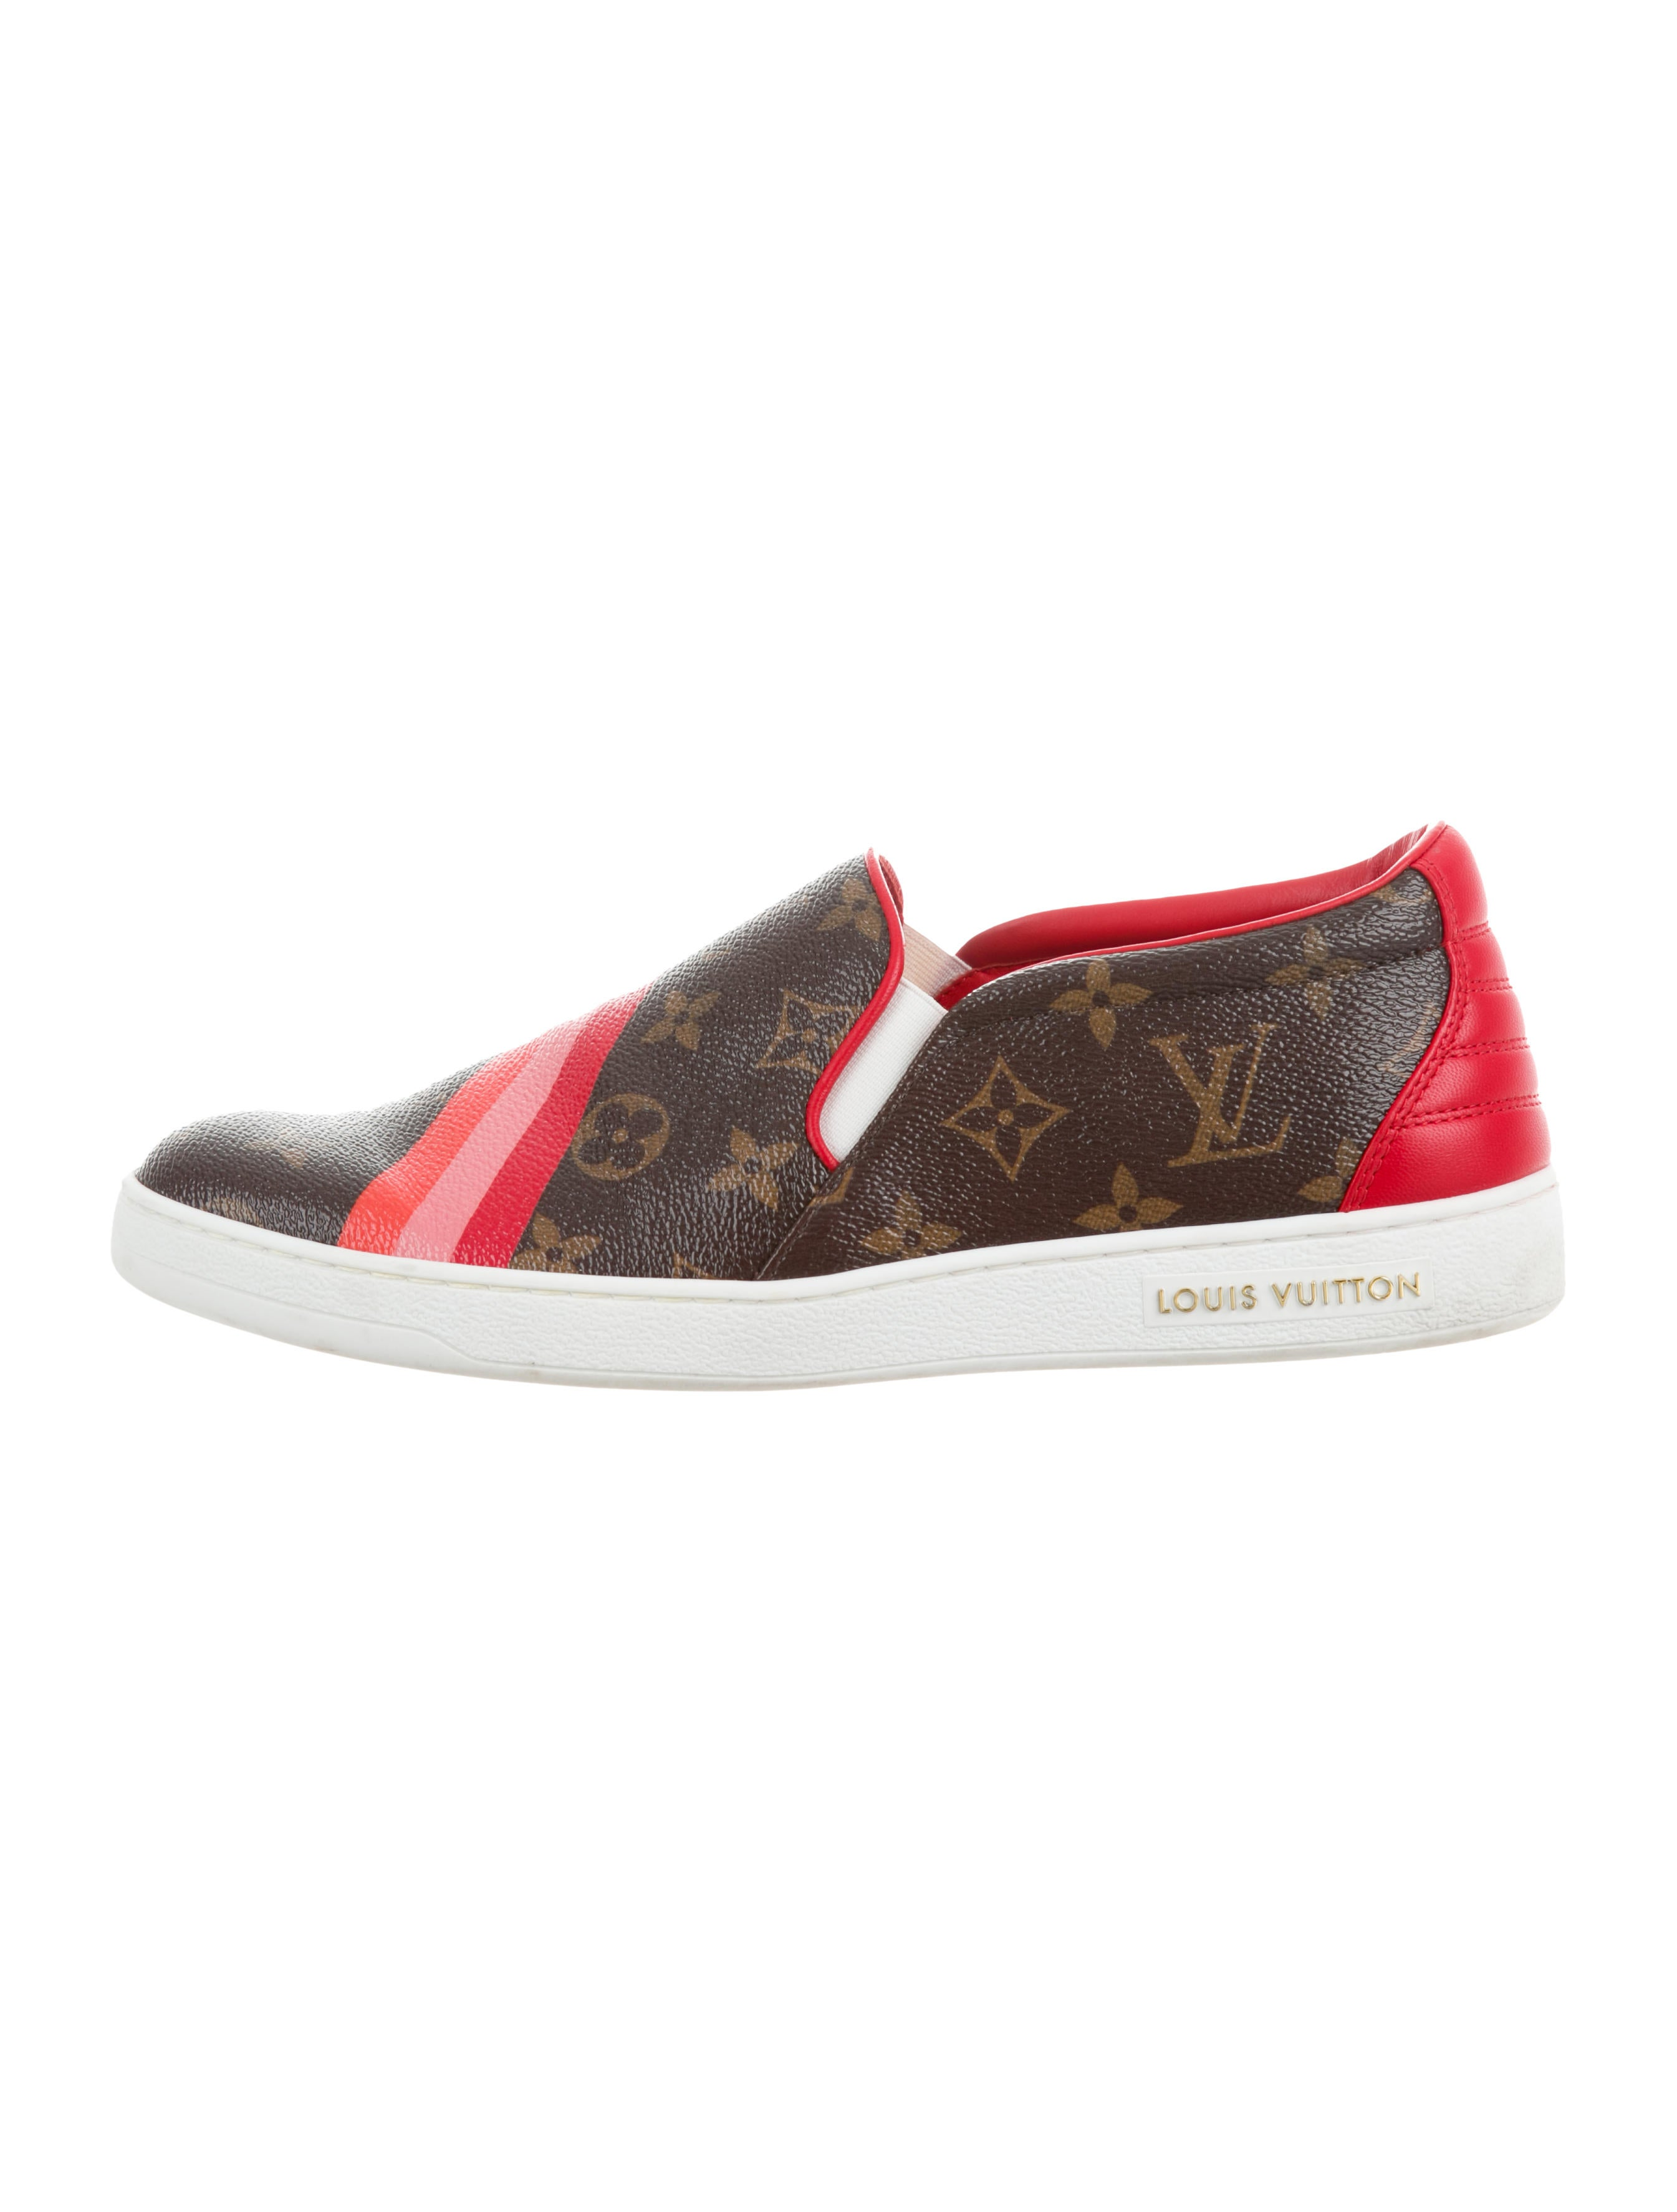 fbaa39dfeaaa Louis Vuitton Front Row Monogram Slip-On Sneakers - Shoes ...